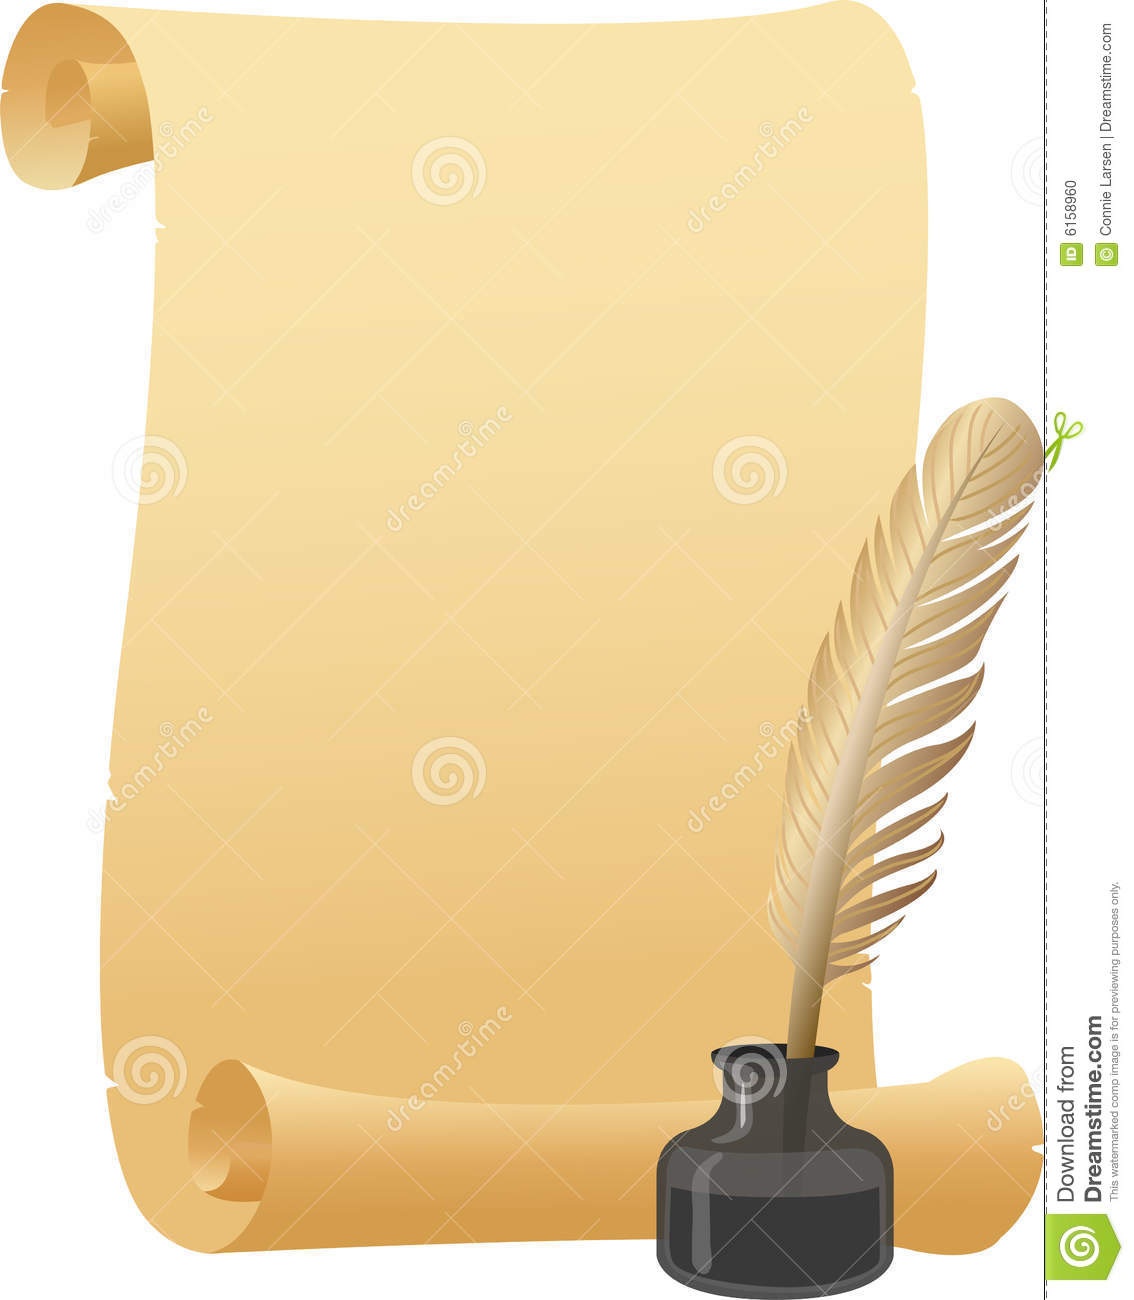 quill and parchment clipart - photo #15